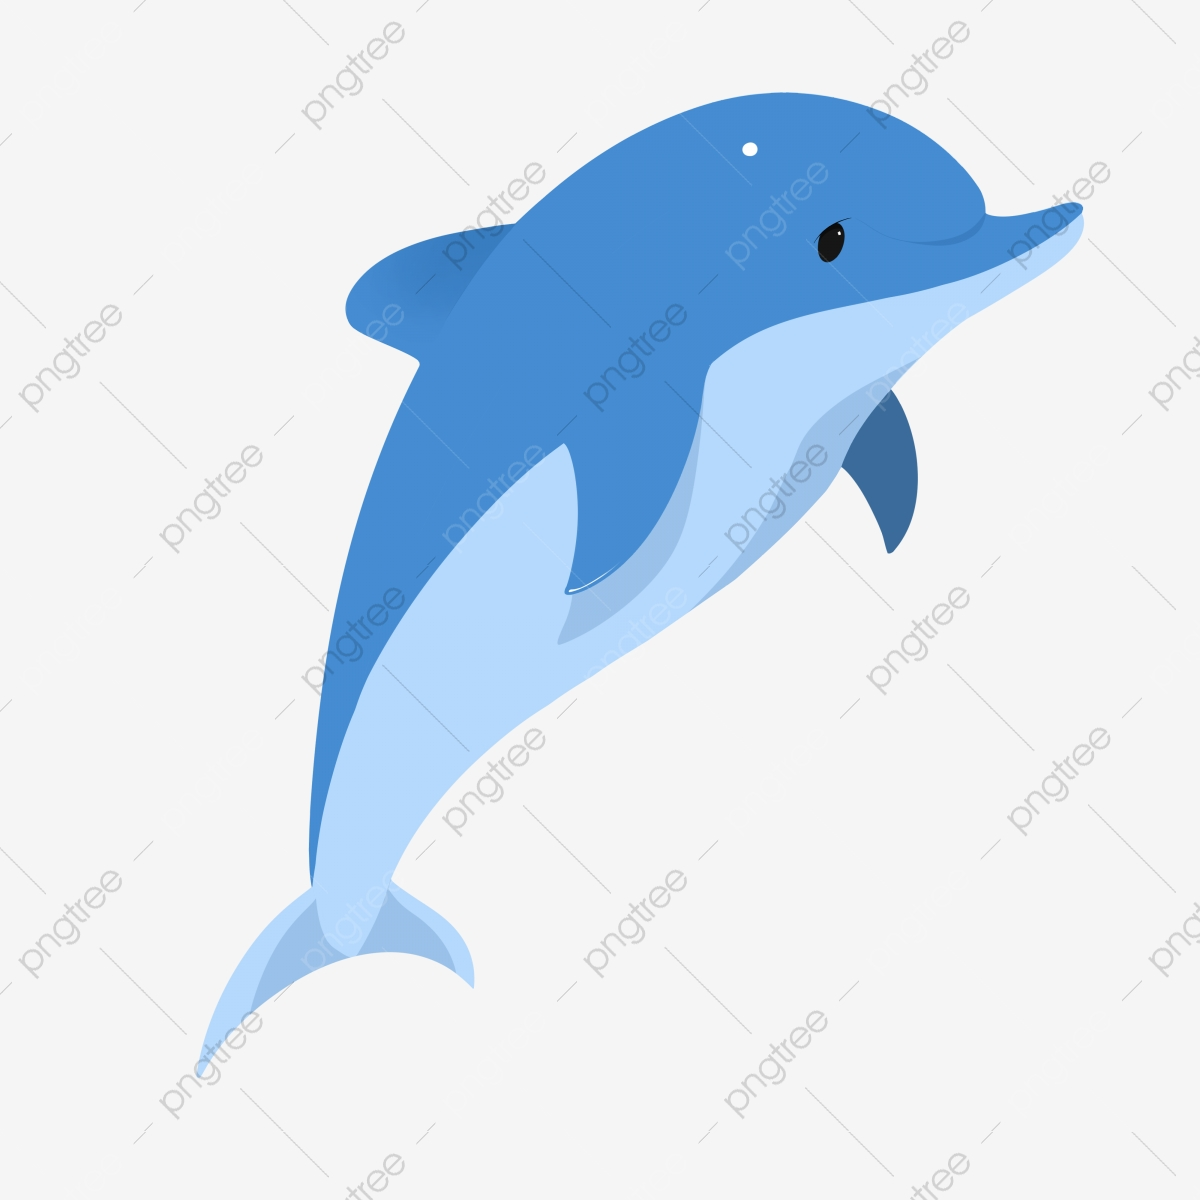 Jumping Dolphin Animal Jumping Clipart Marine Life Jumping Dolphins Png Transparent Clipart Image And Psd File For Free Download